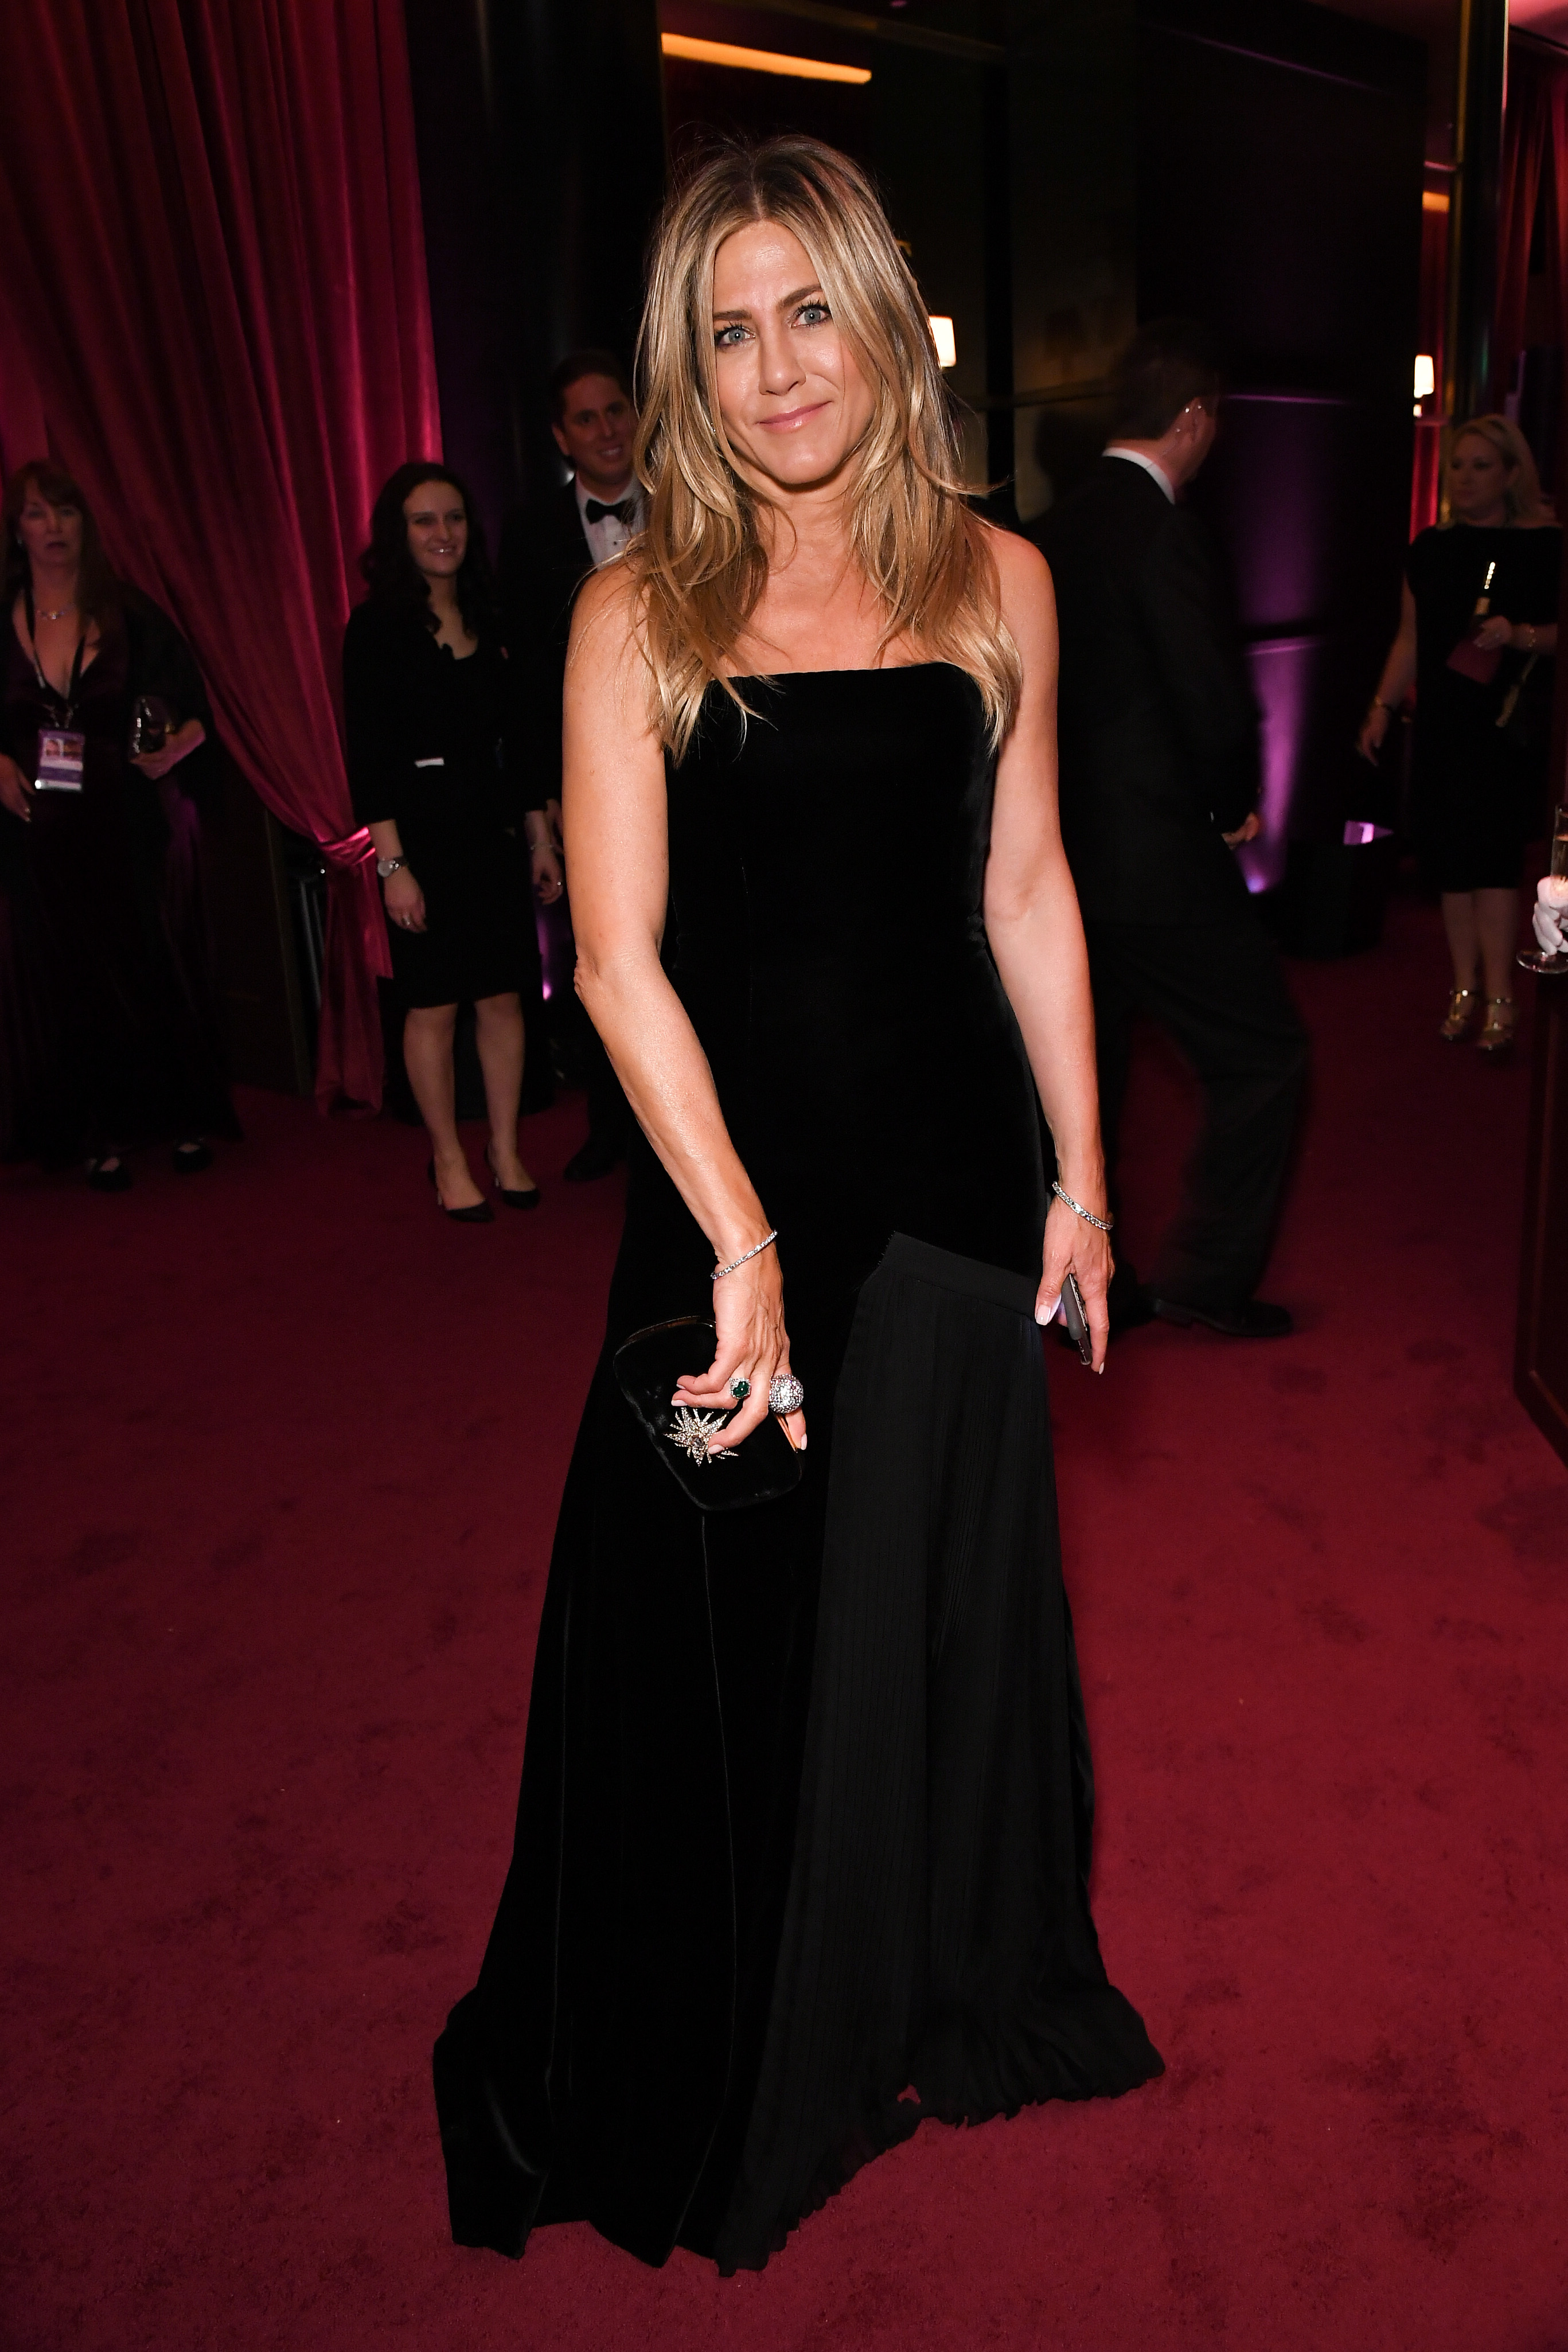 Jennifer Aniston wears Schiaparelli Couture inside the Netflix Golden Globes After Party in Los Angeles on Jan. 7, 2018.